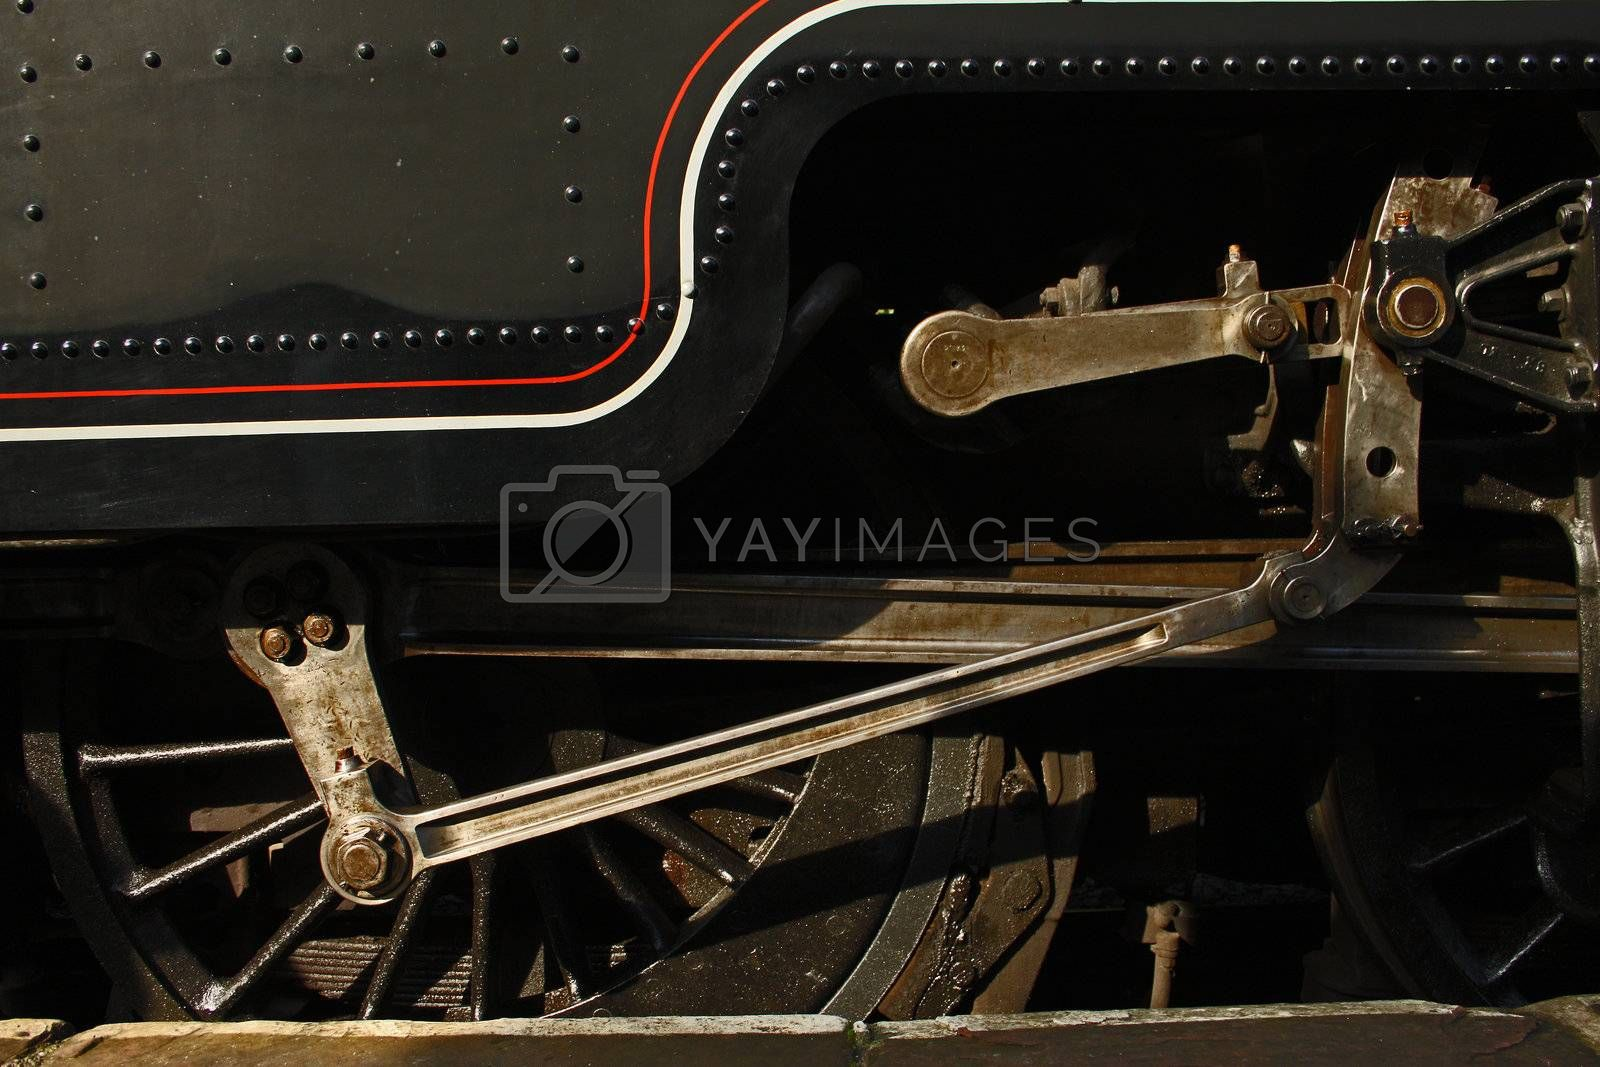 View of drive shaft and brake pad of a steam engine locomotive